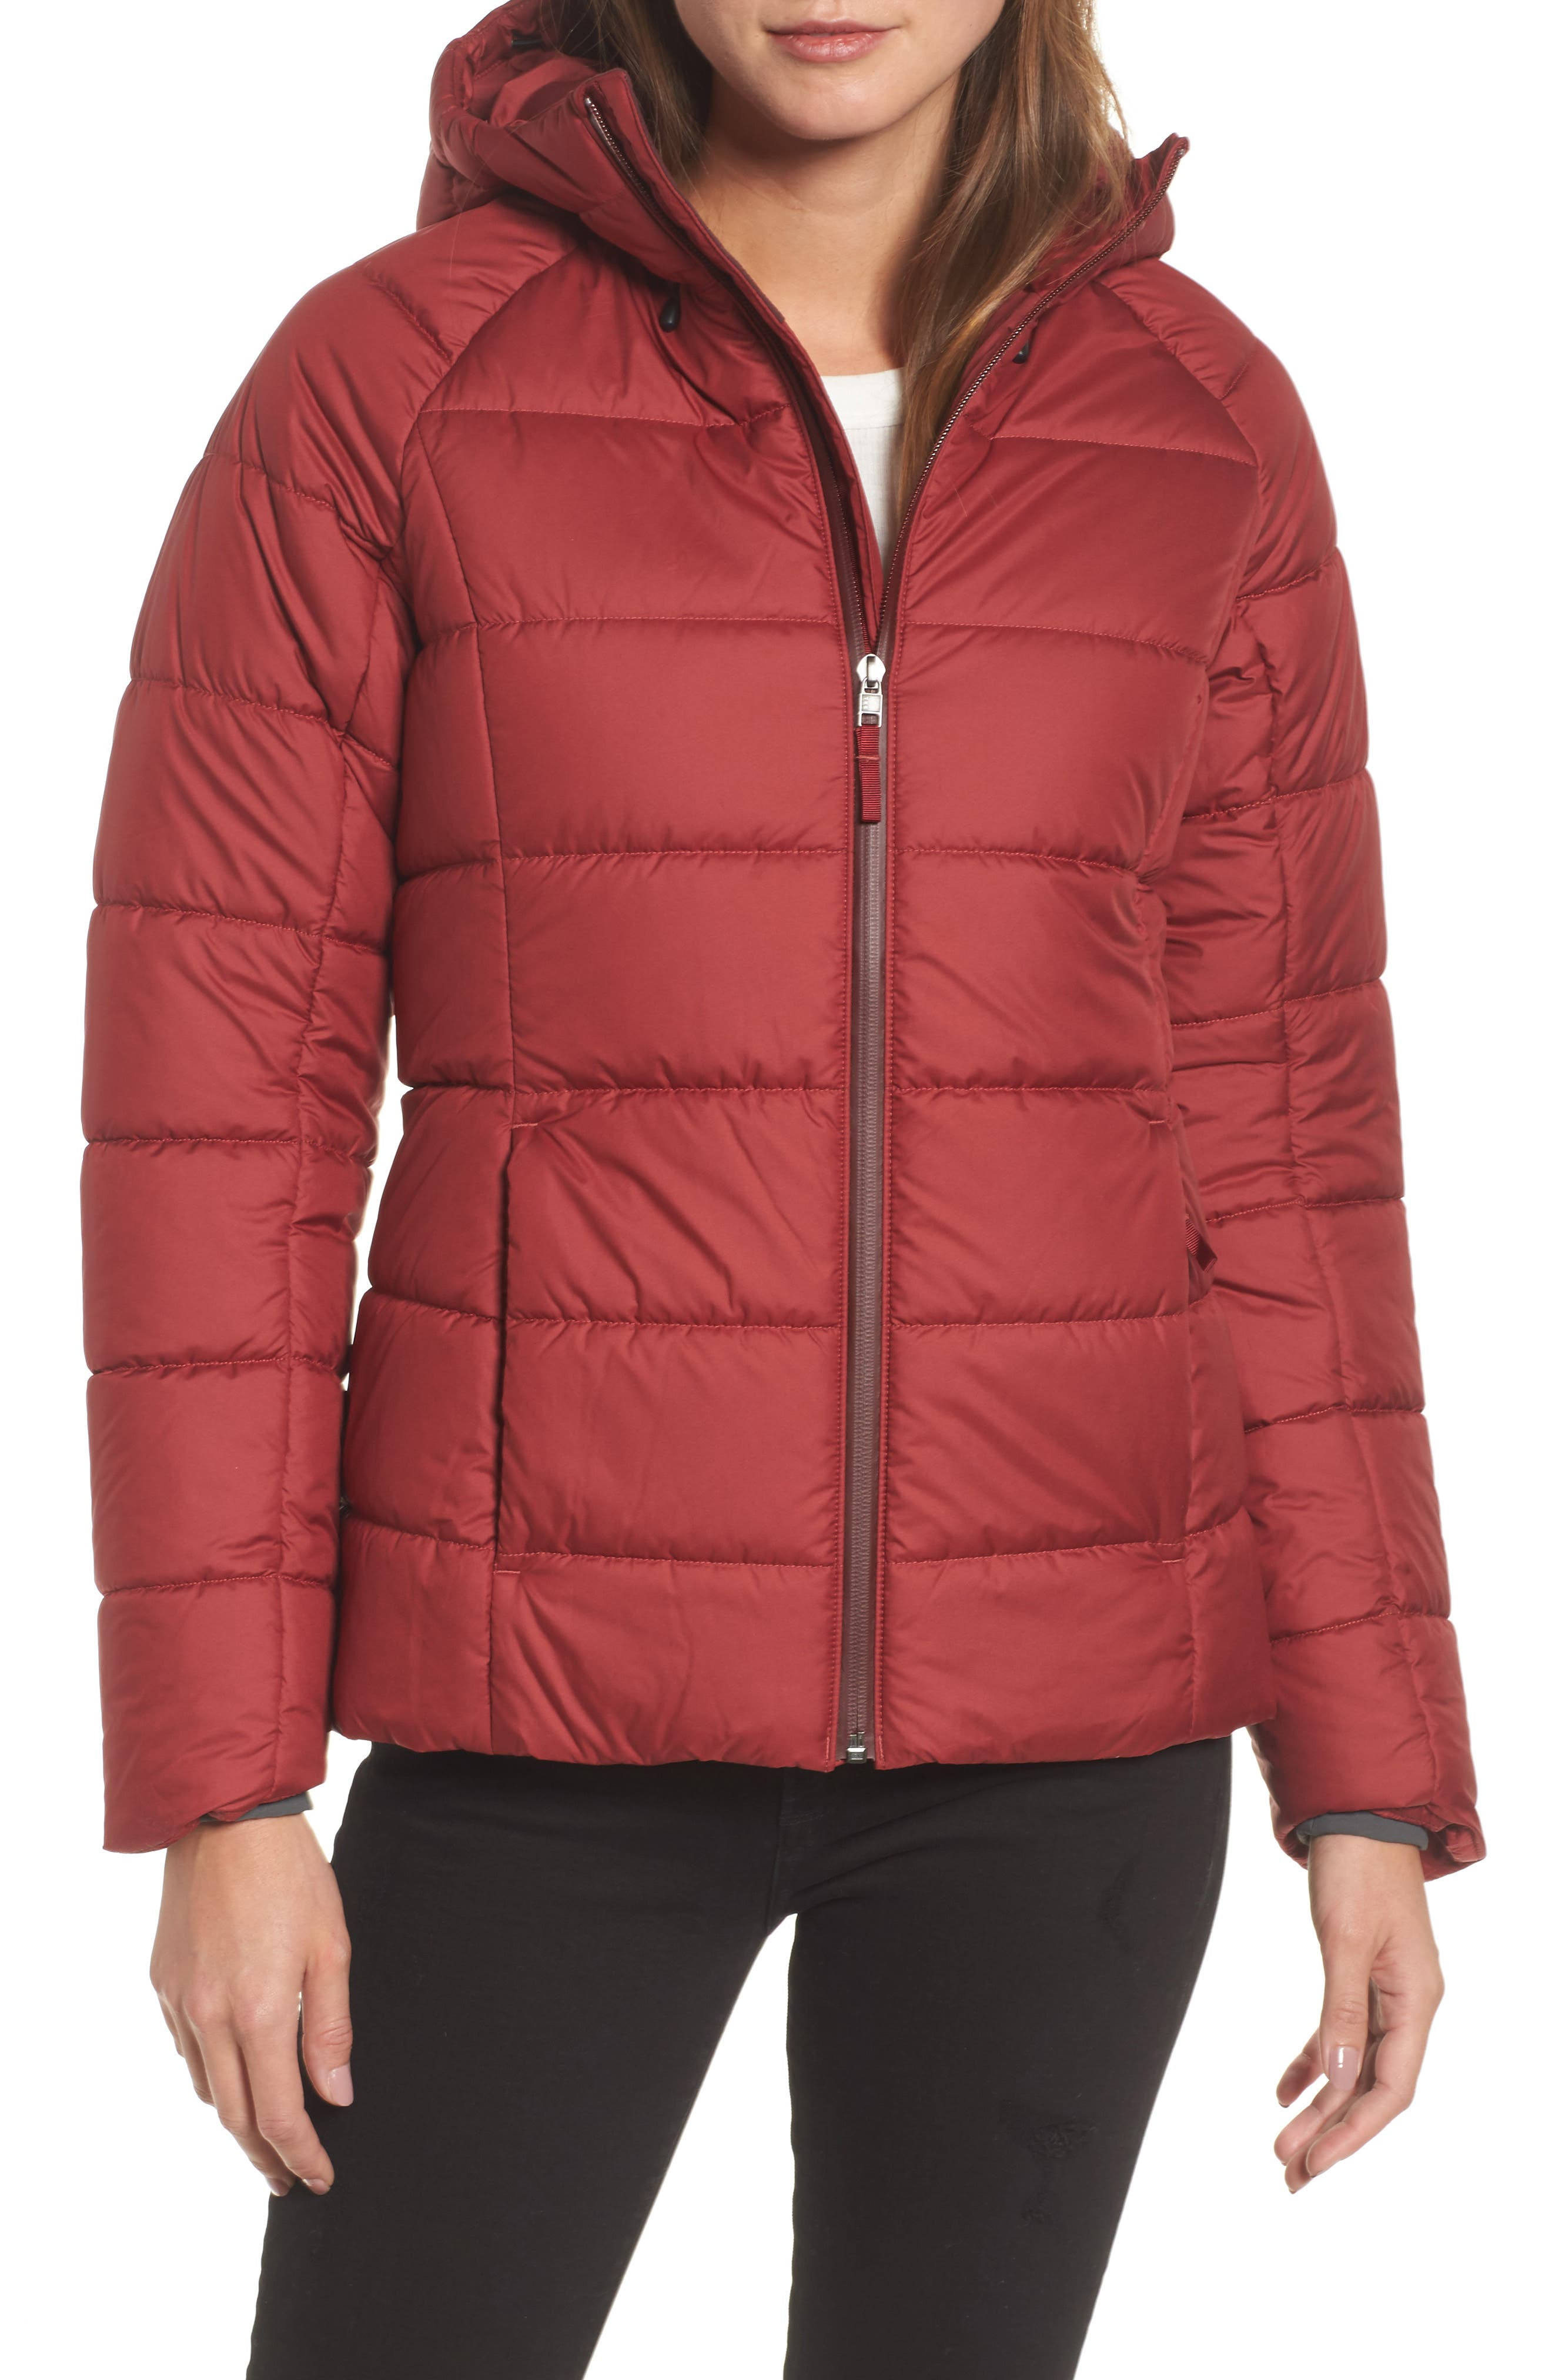 Alternate Image 1 Selected - Patagonia Transitional HyperDAS™ Insulated Jacket